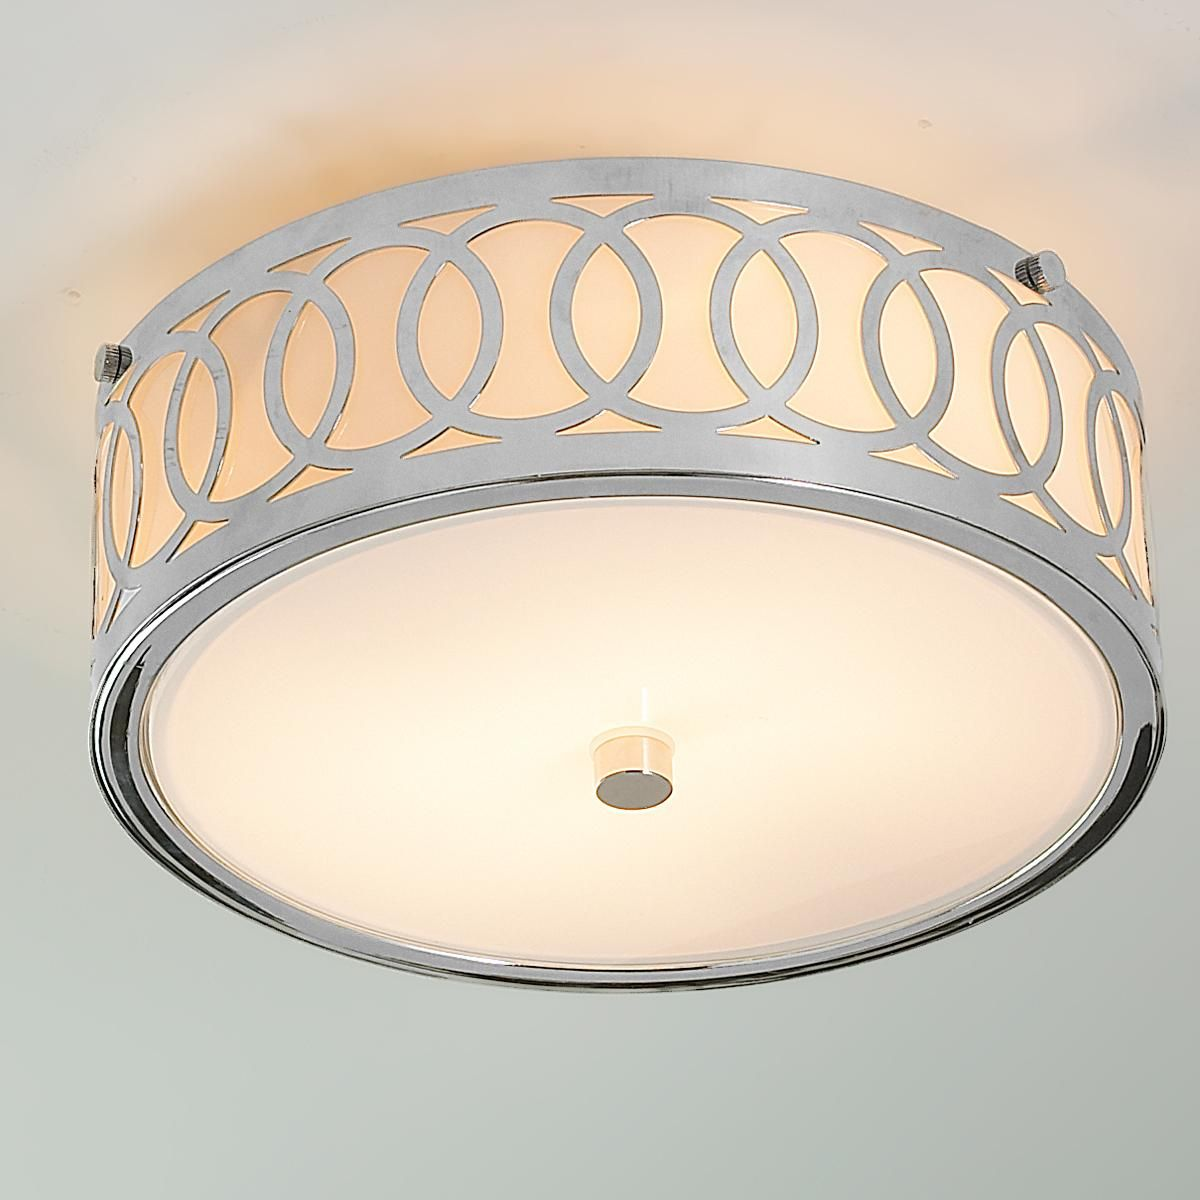 small interlocking rings flush mount ceiling light km 18700 | 6b0ebda553856ba42bb53a6632f77e9f